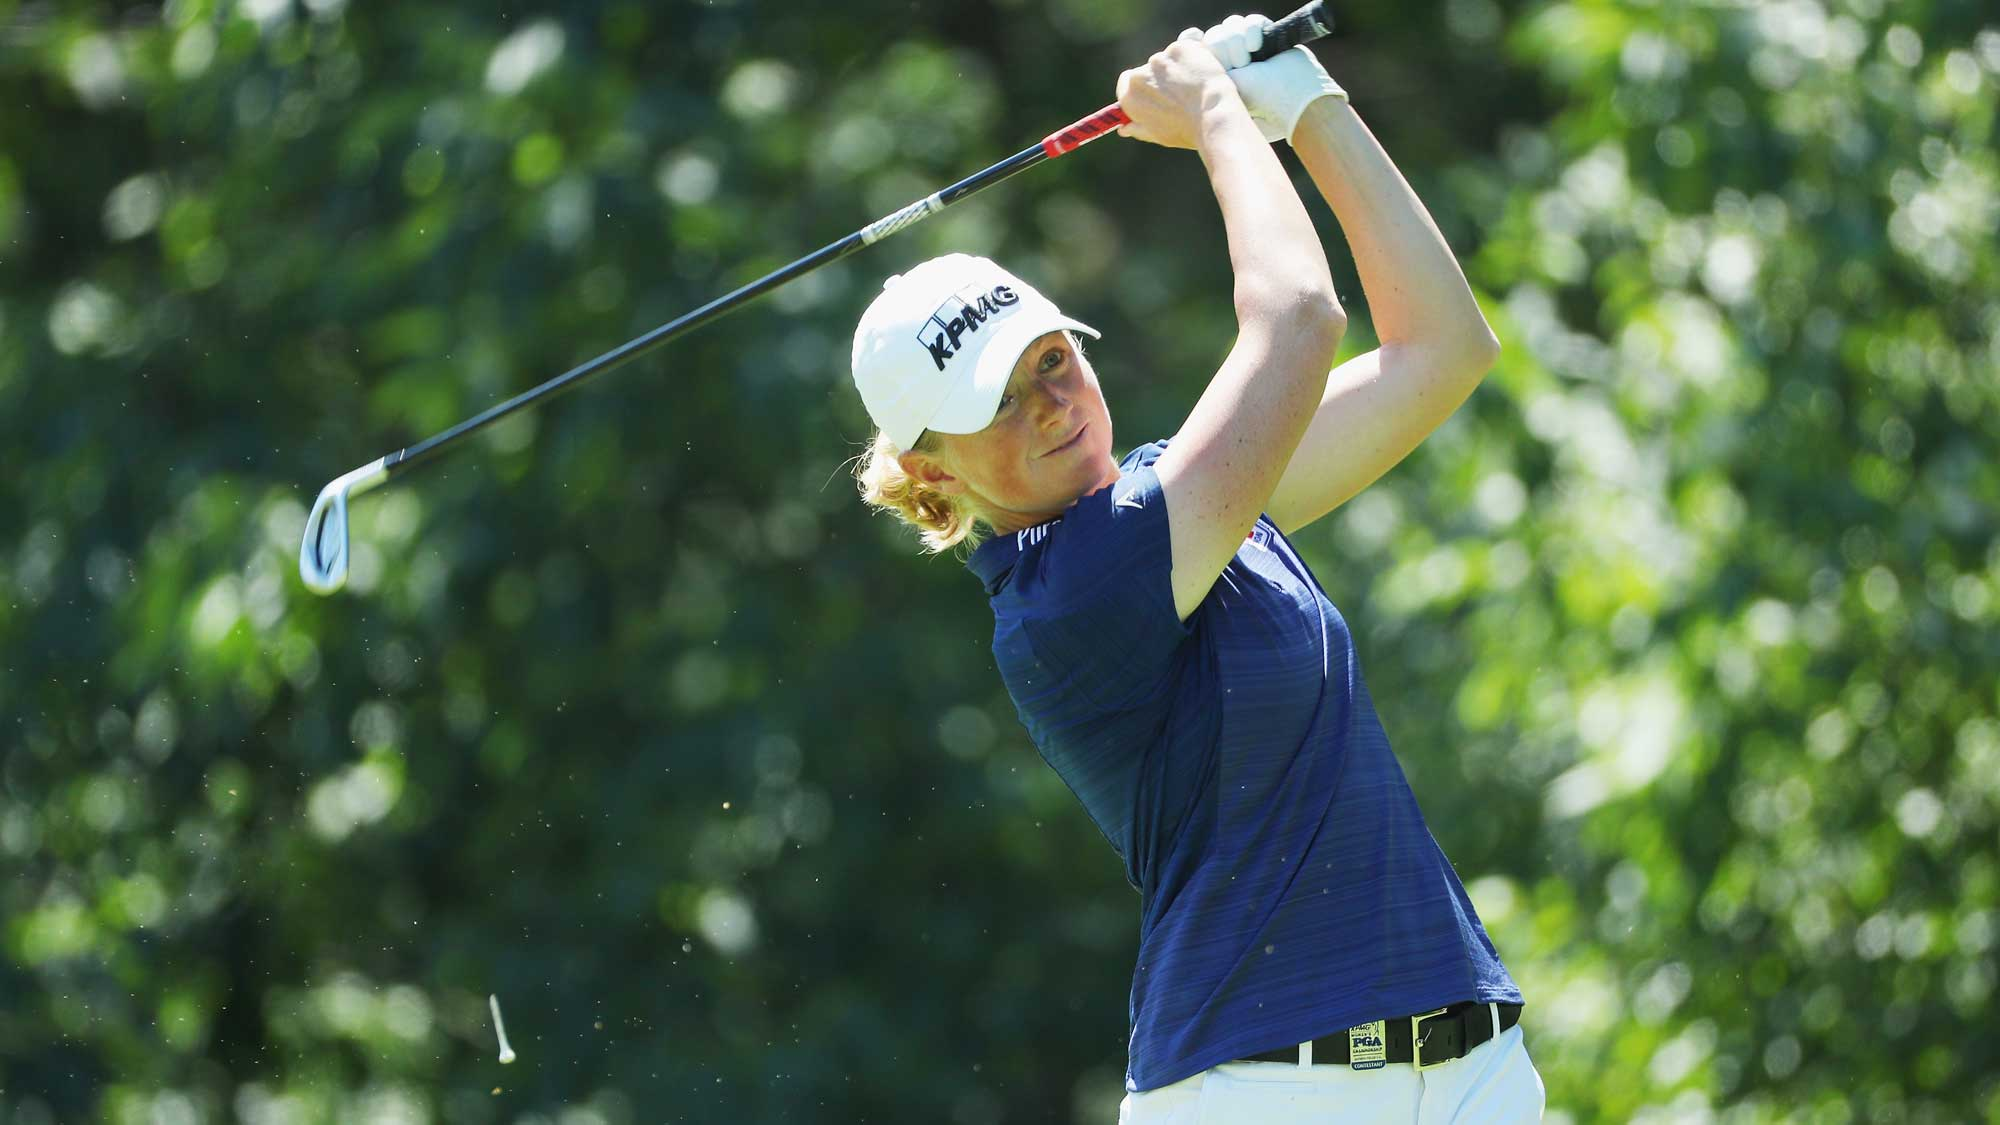 Stacy Lewis hits her tee shot on the seventh hole during the third round of the 2017 KPMG Women's PGA Championship